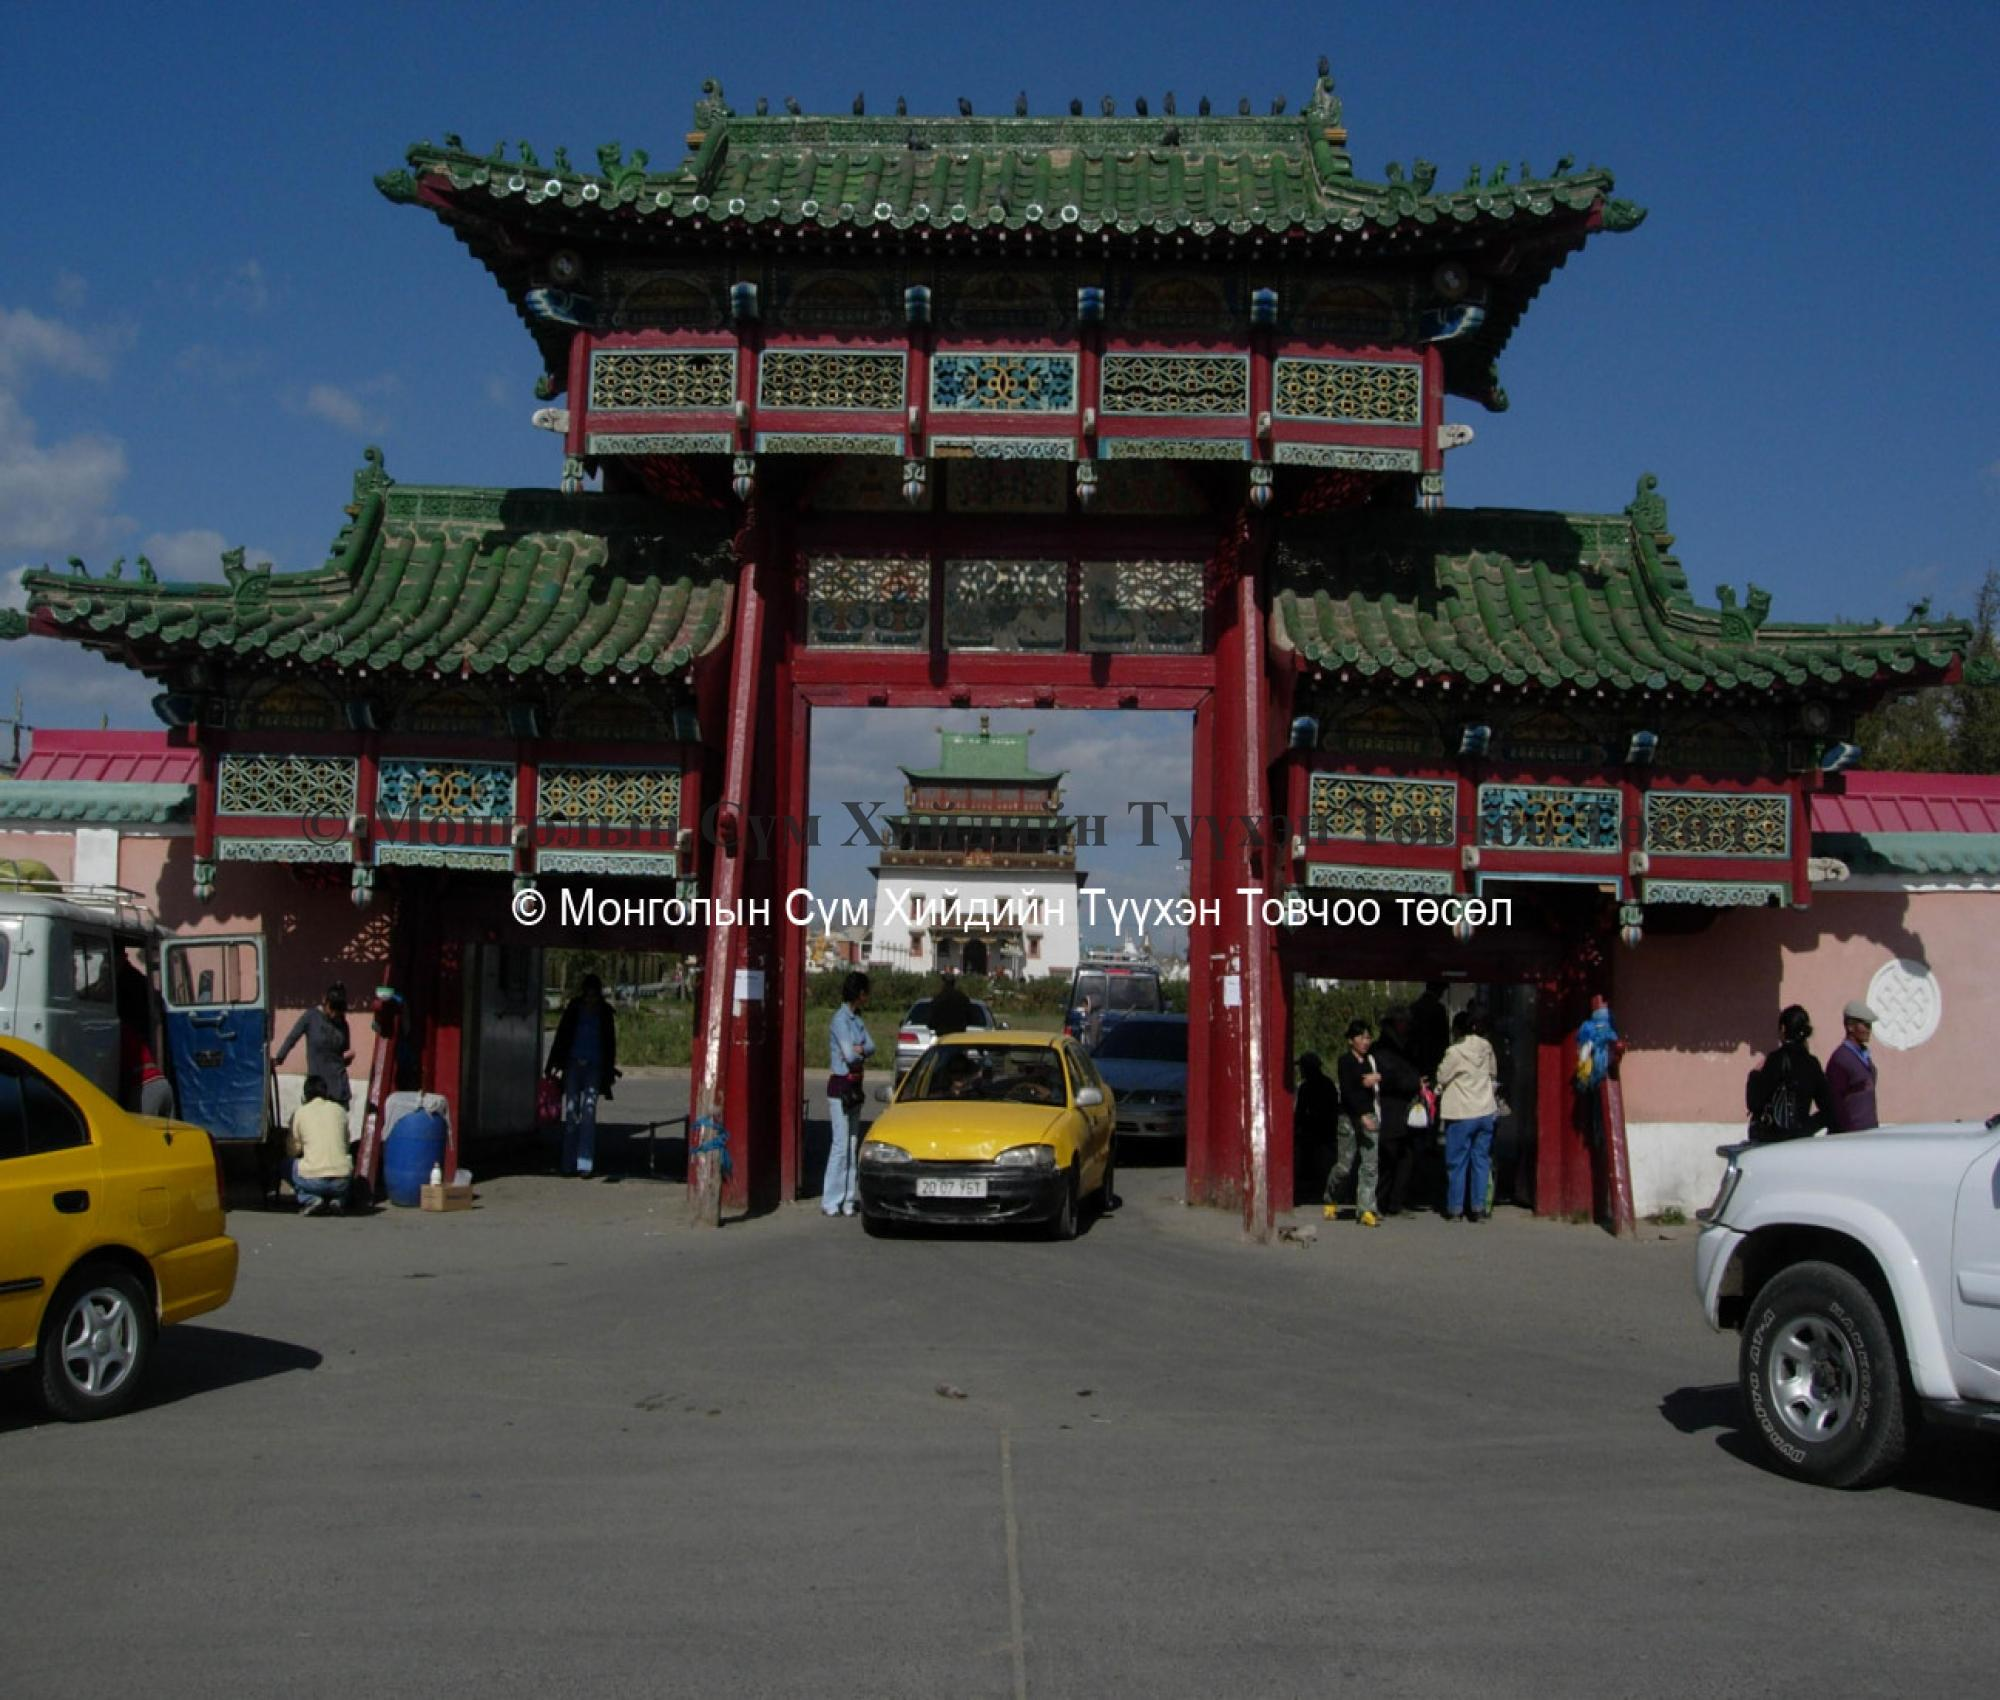 The main entrance of Gandan Monastery and Janraise